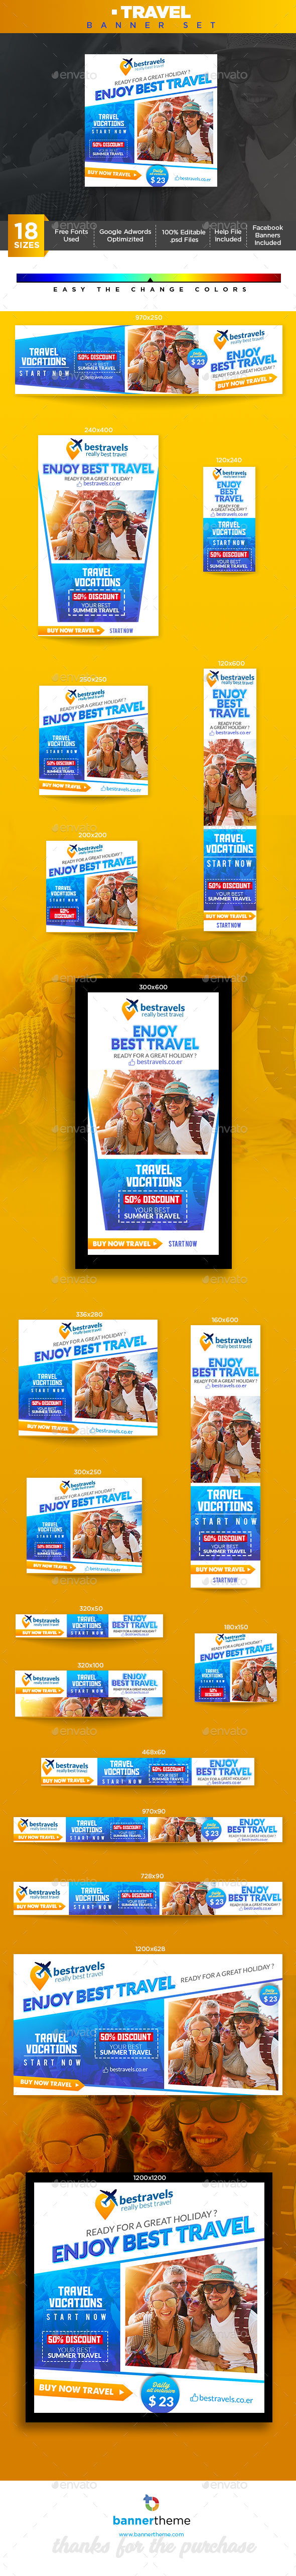 Travel Banner - Banners & Ads Web Elements